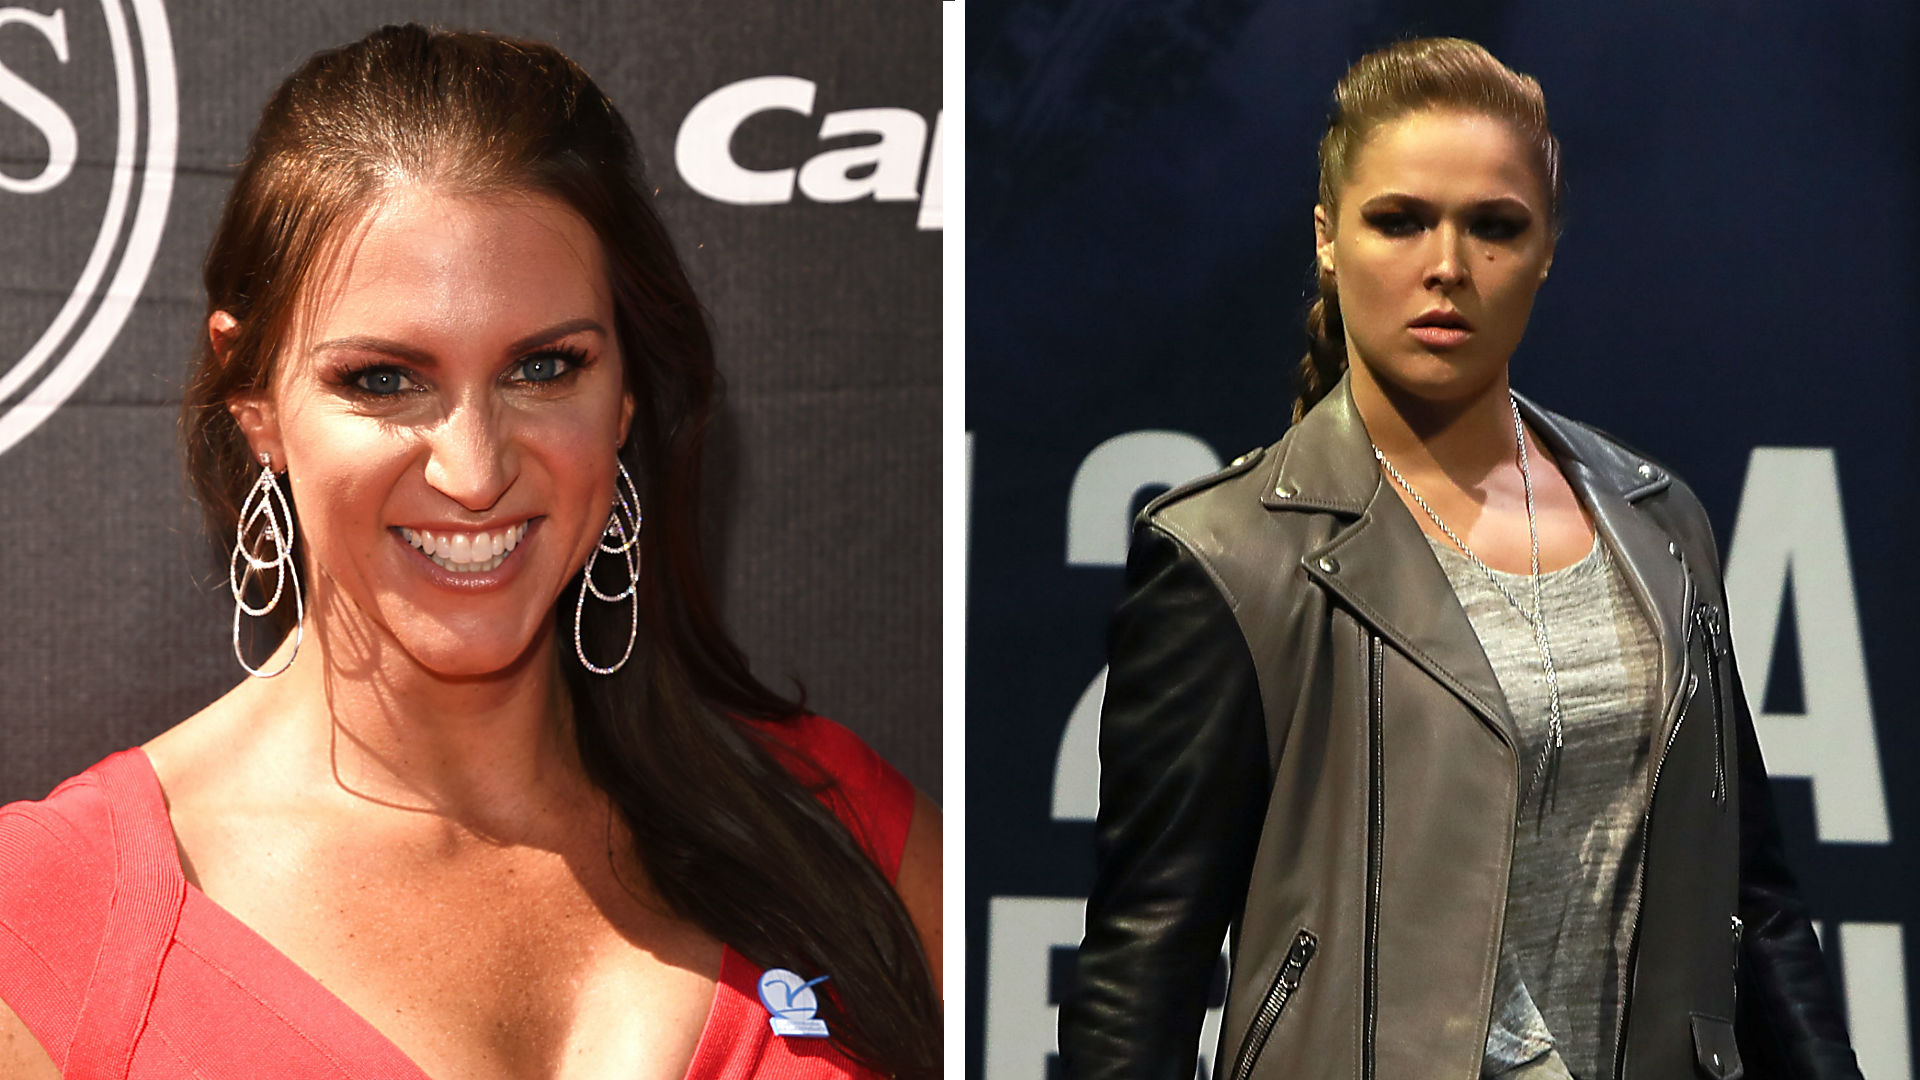 Stephanie Mcmahon Wwe Would Welcome Ronda Rousey With Open Arms Wwe Sporting News